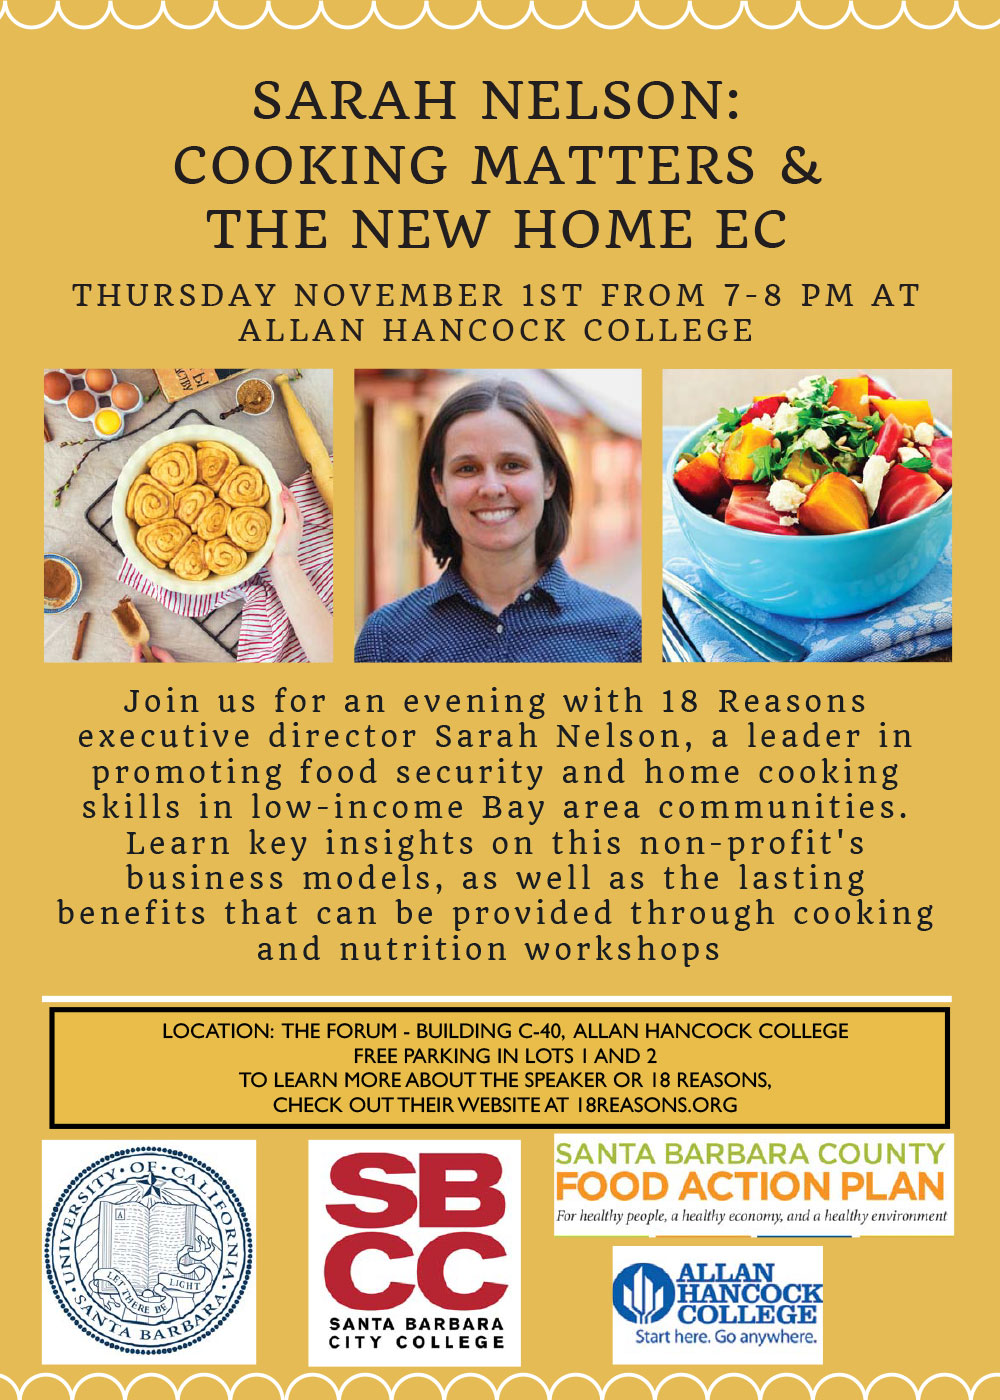 Sarah Nelson: Cooking Matters & The New Home Ec